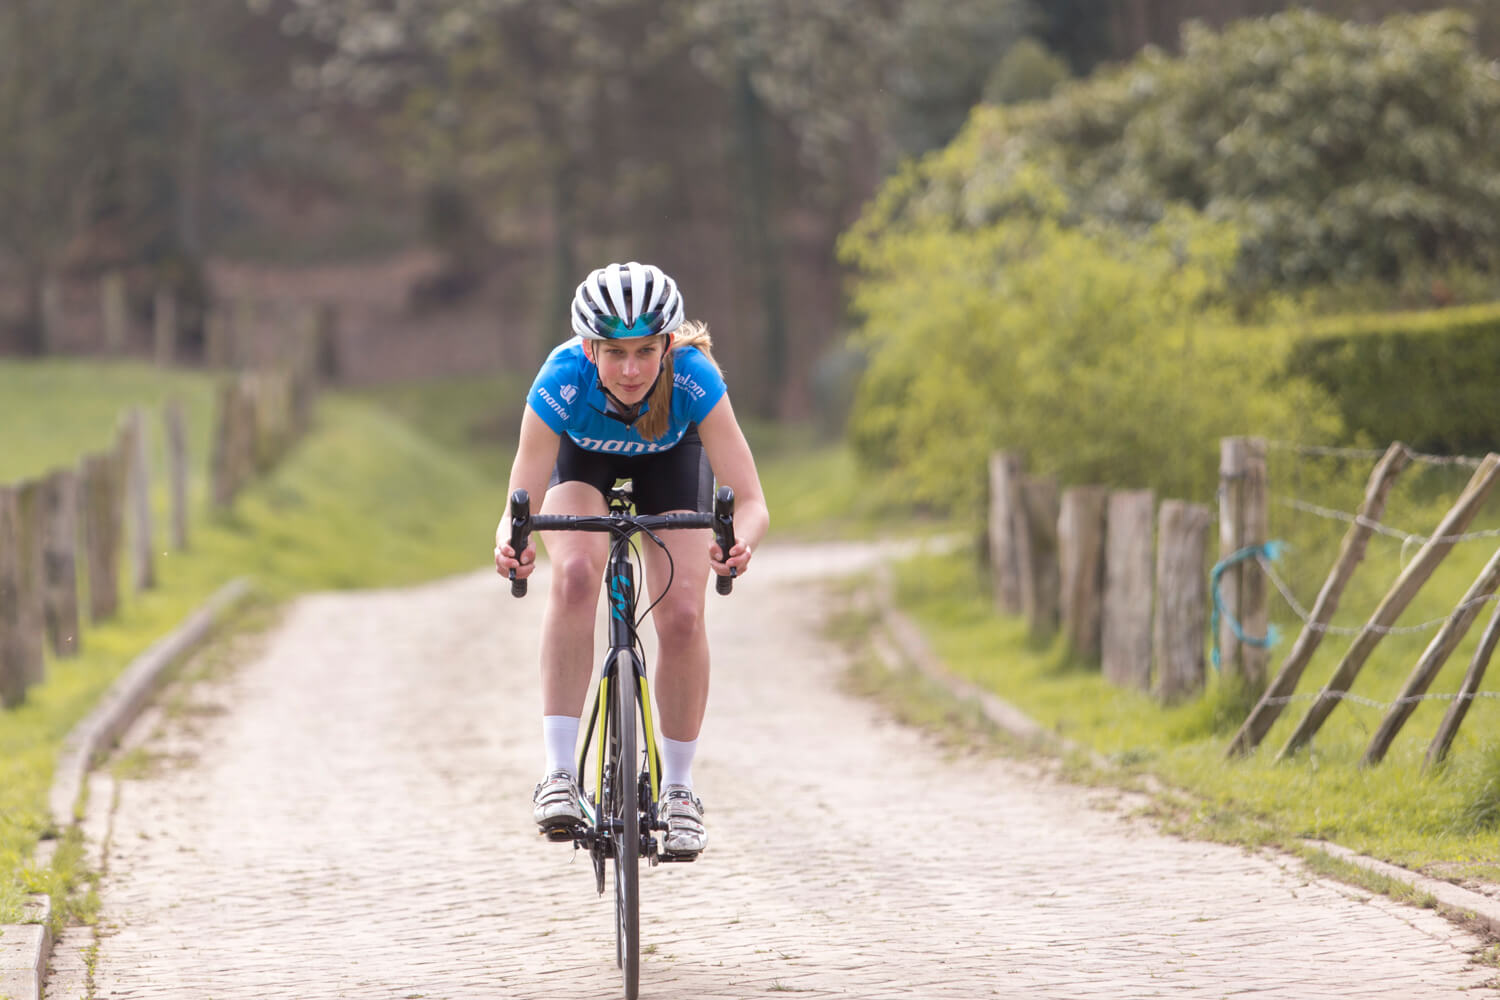 Do you suffer from problems with your hands when cycling? A wrong saddle position, positioning you too far forward, might be the cause.